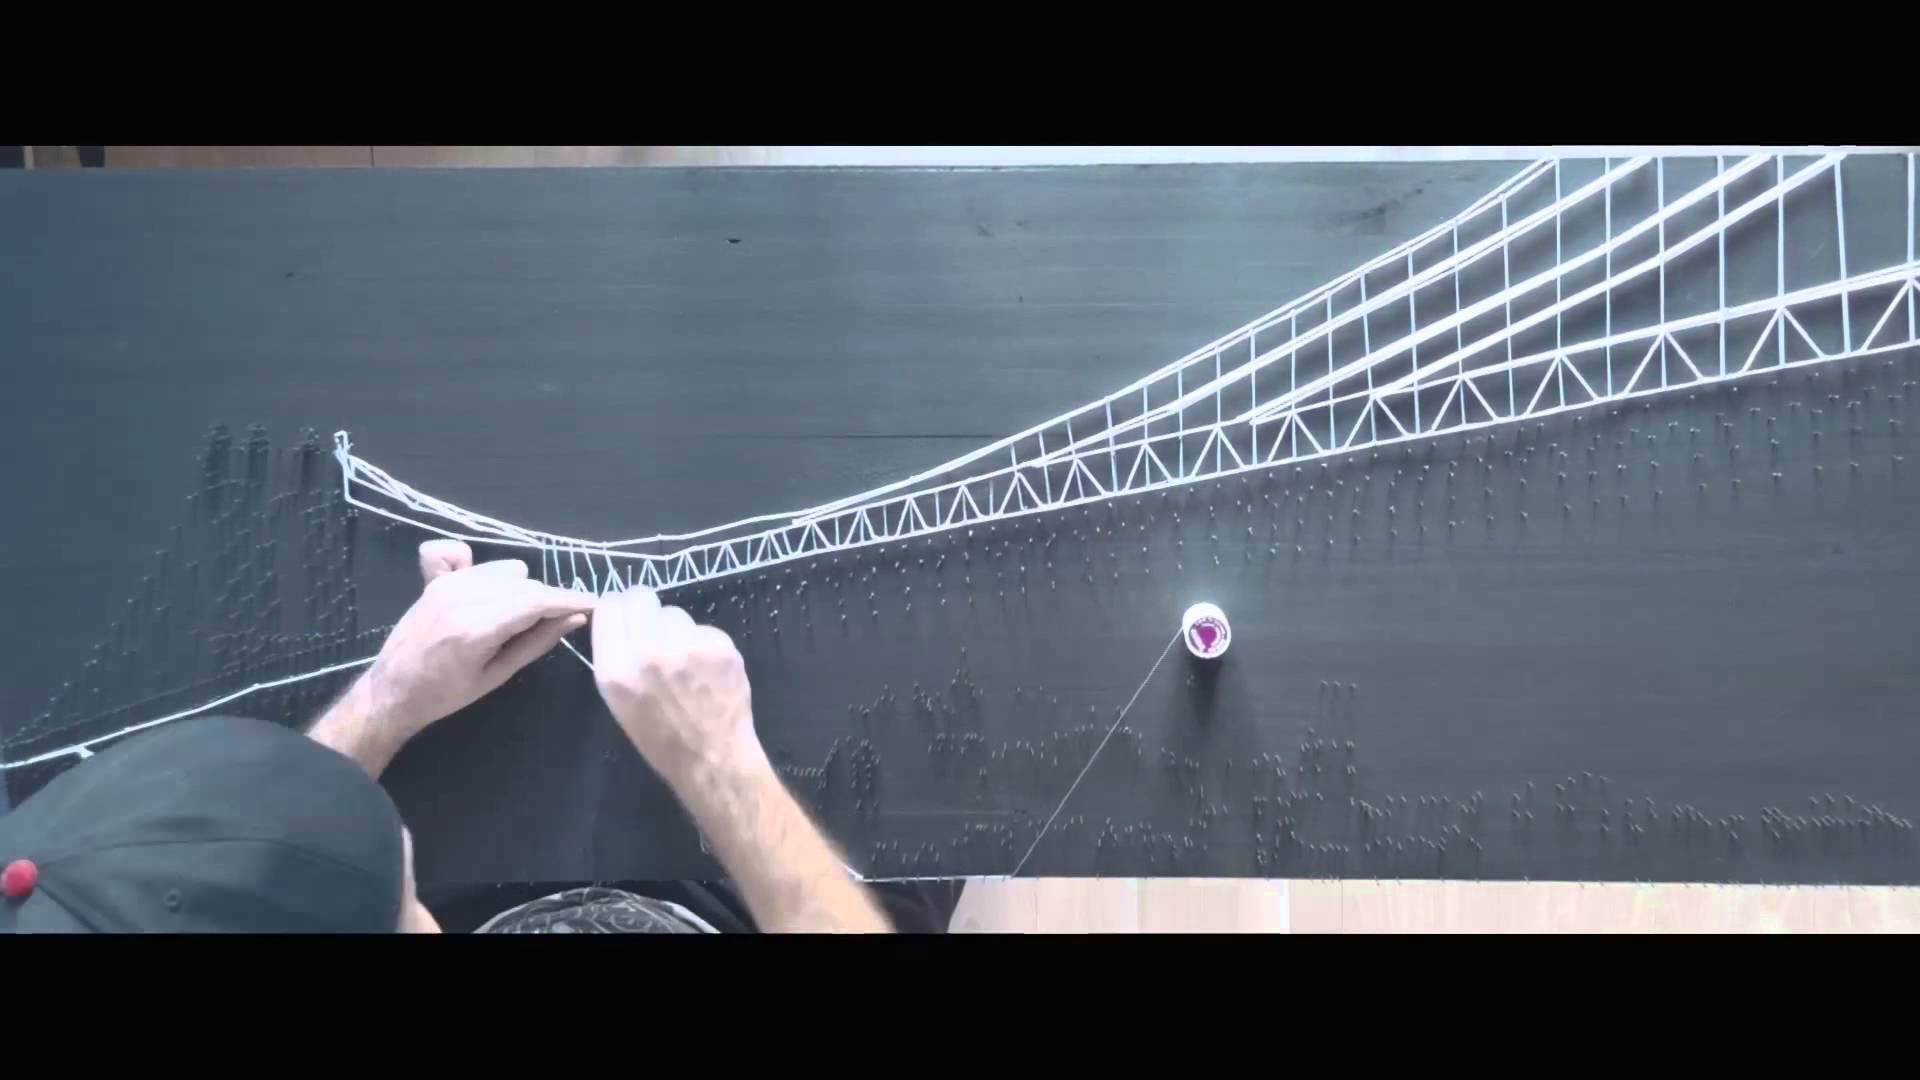 Making of string art new york